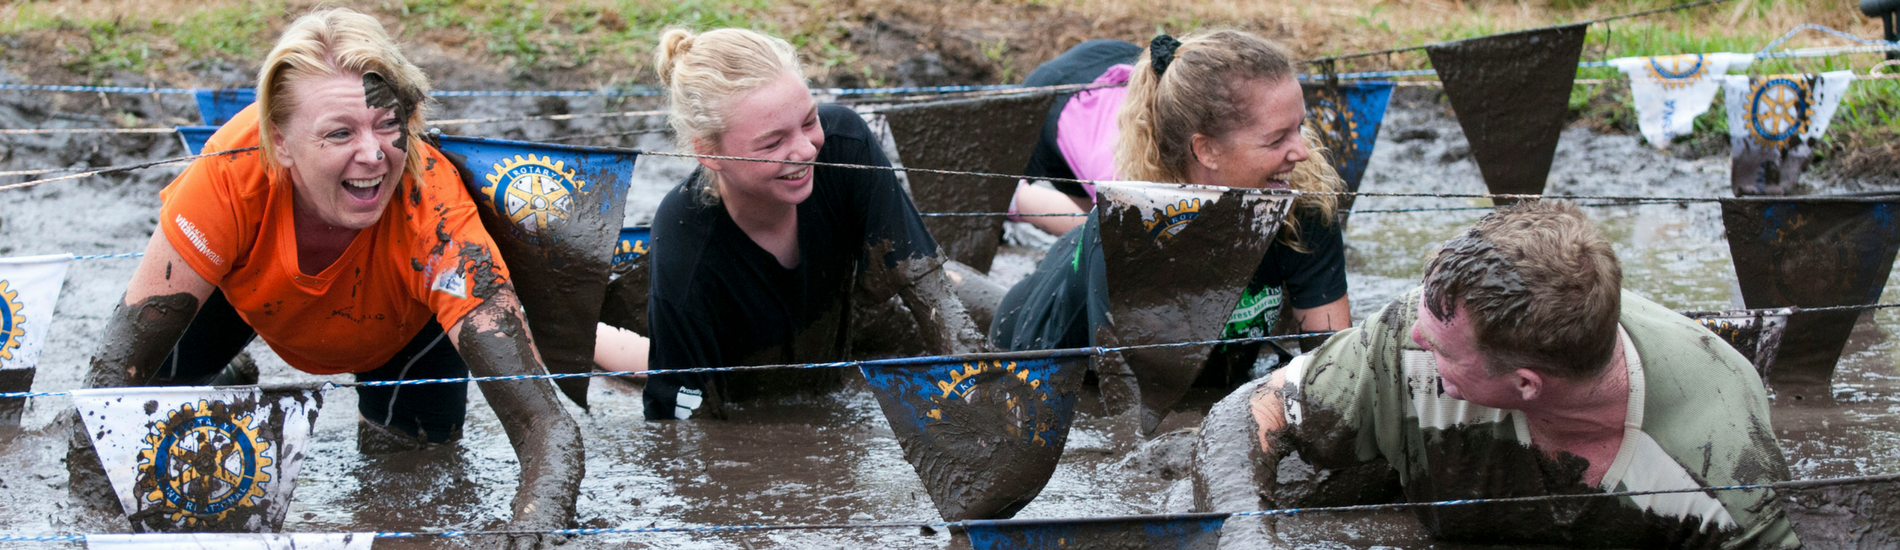 SPLASH Mud Run